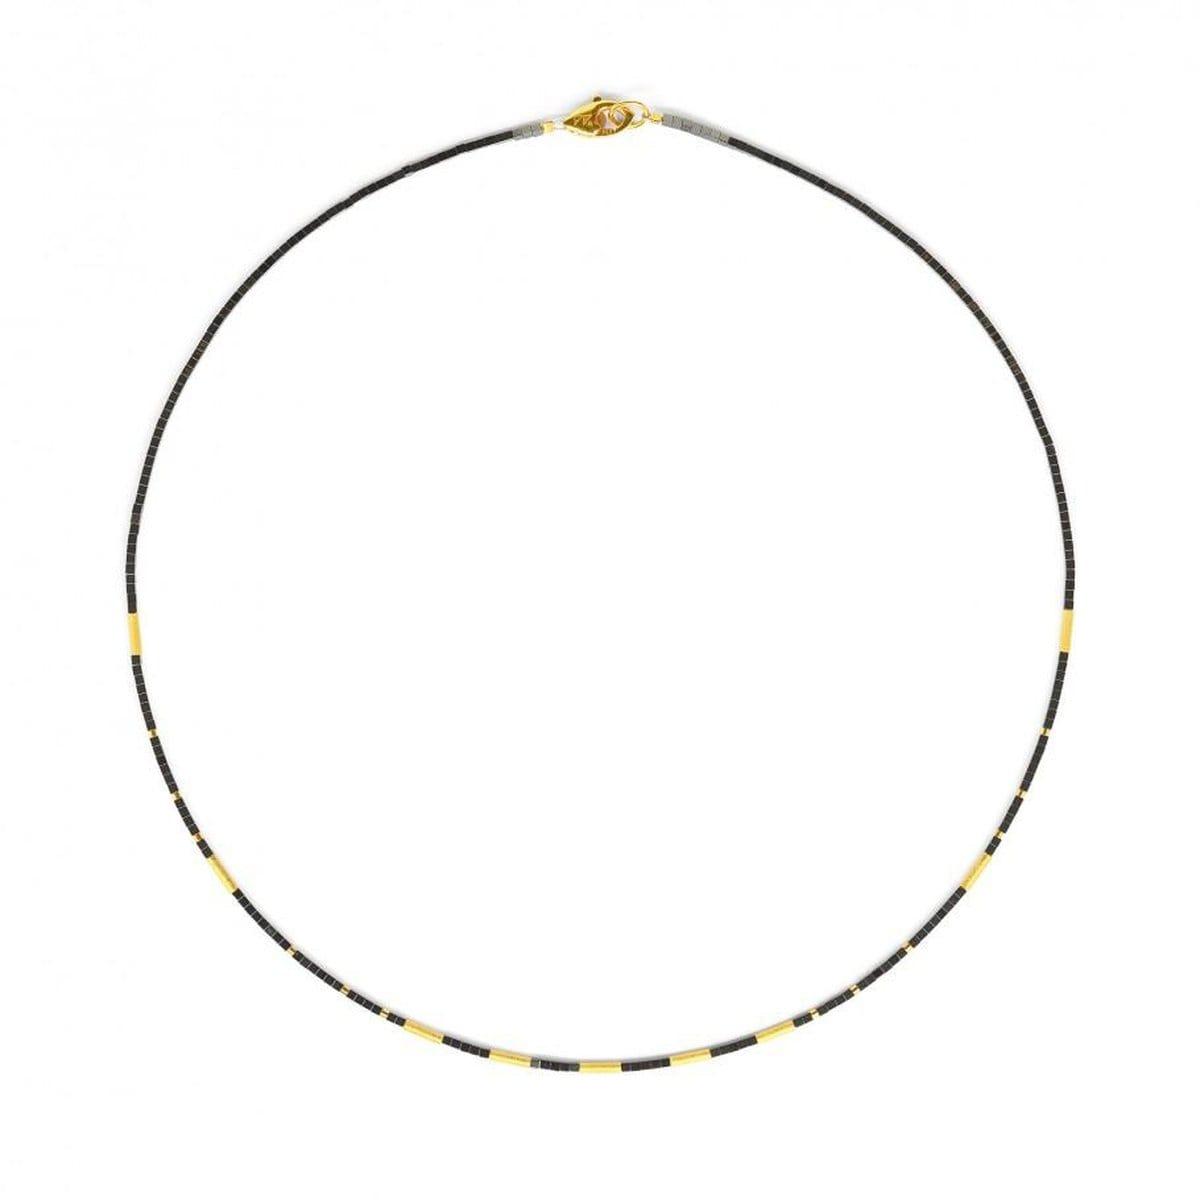 Cliana Hematine Necklace - 84497206